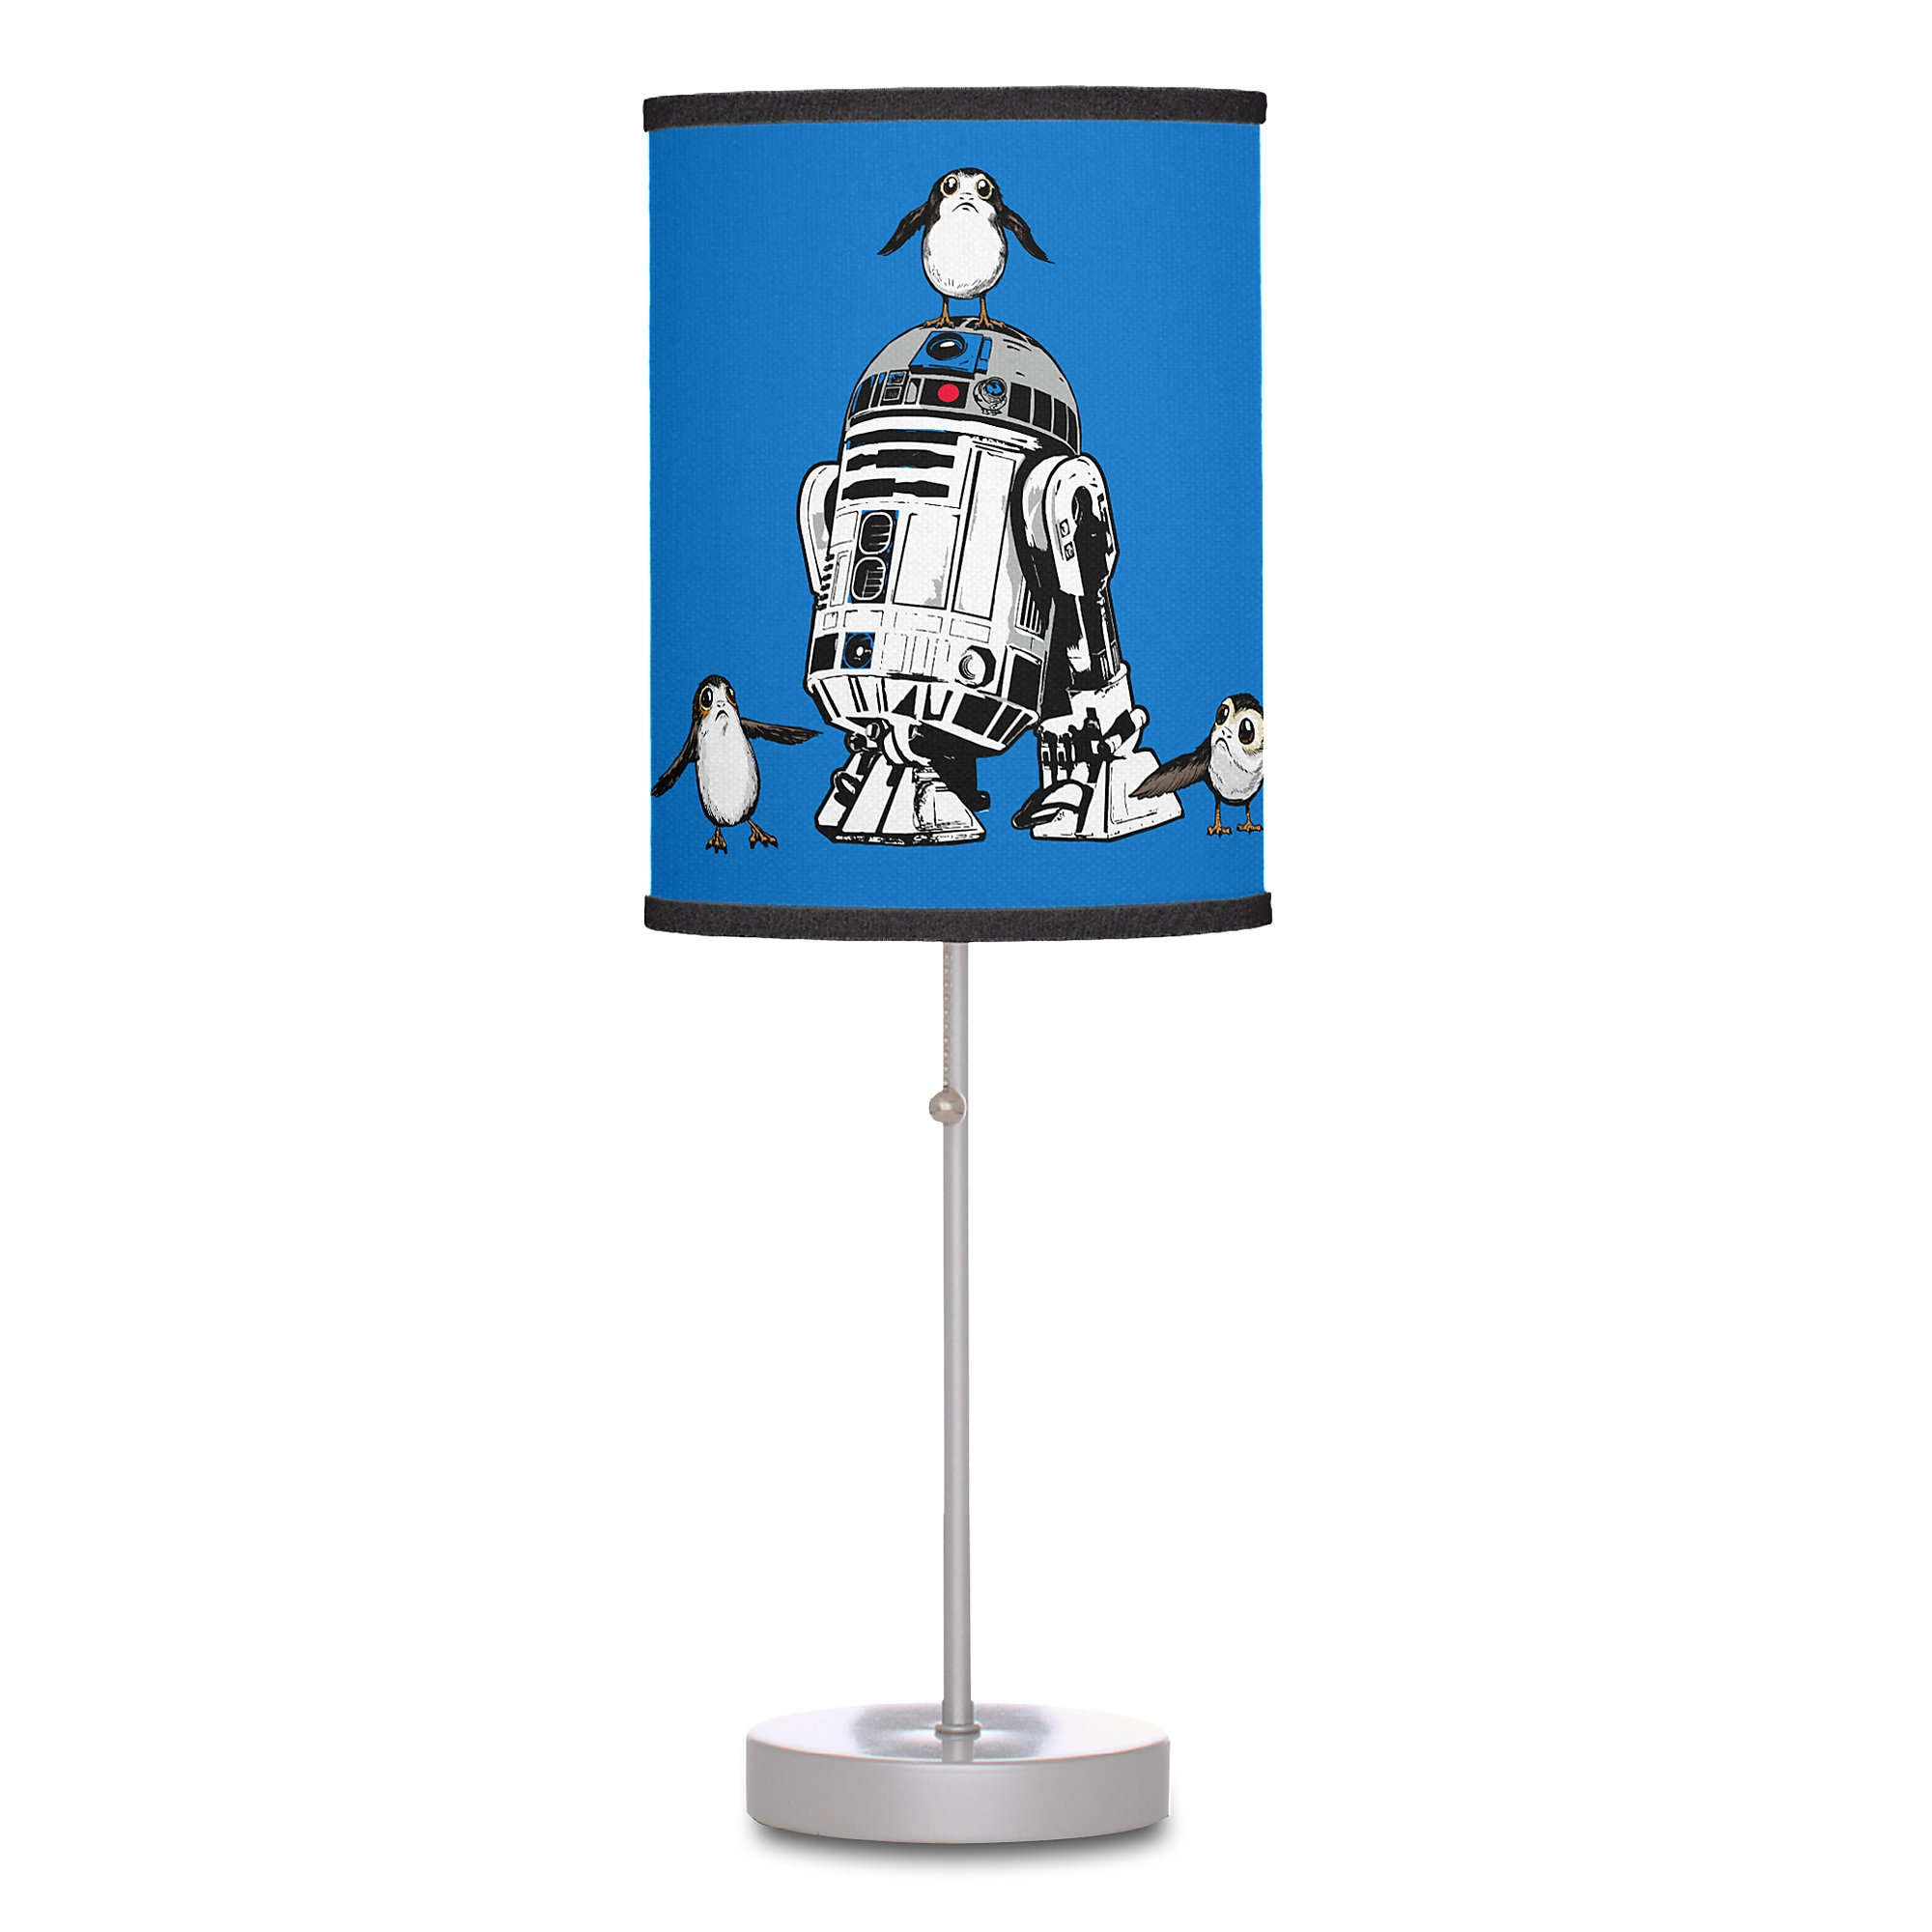 R2-D2 and Porgs Lamp - Star Wars: The Last Jedi - Customizable